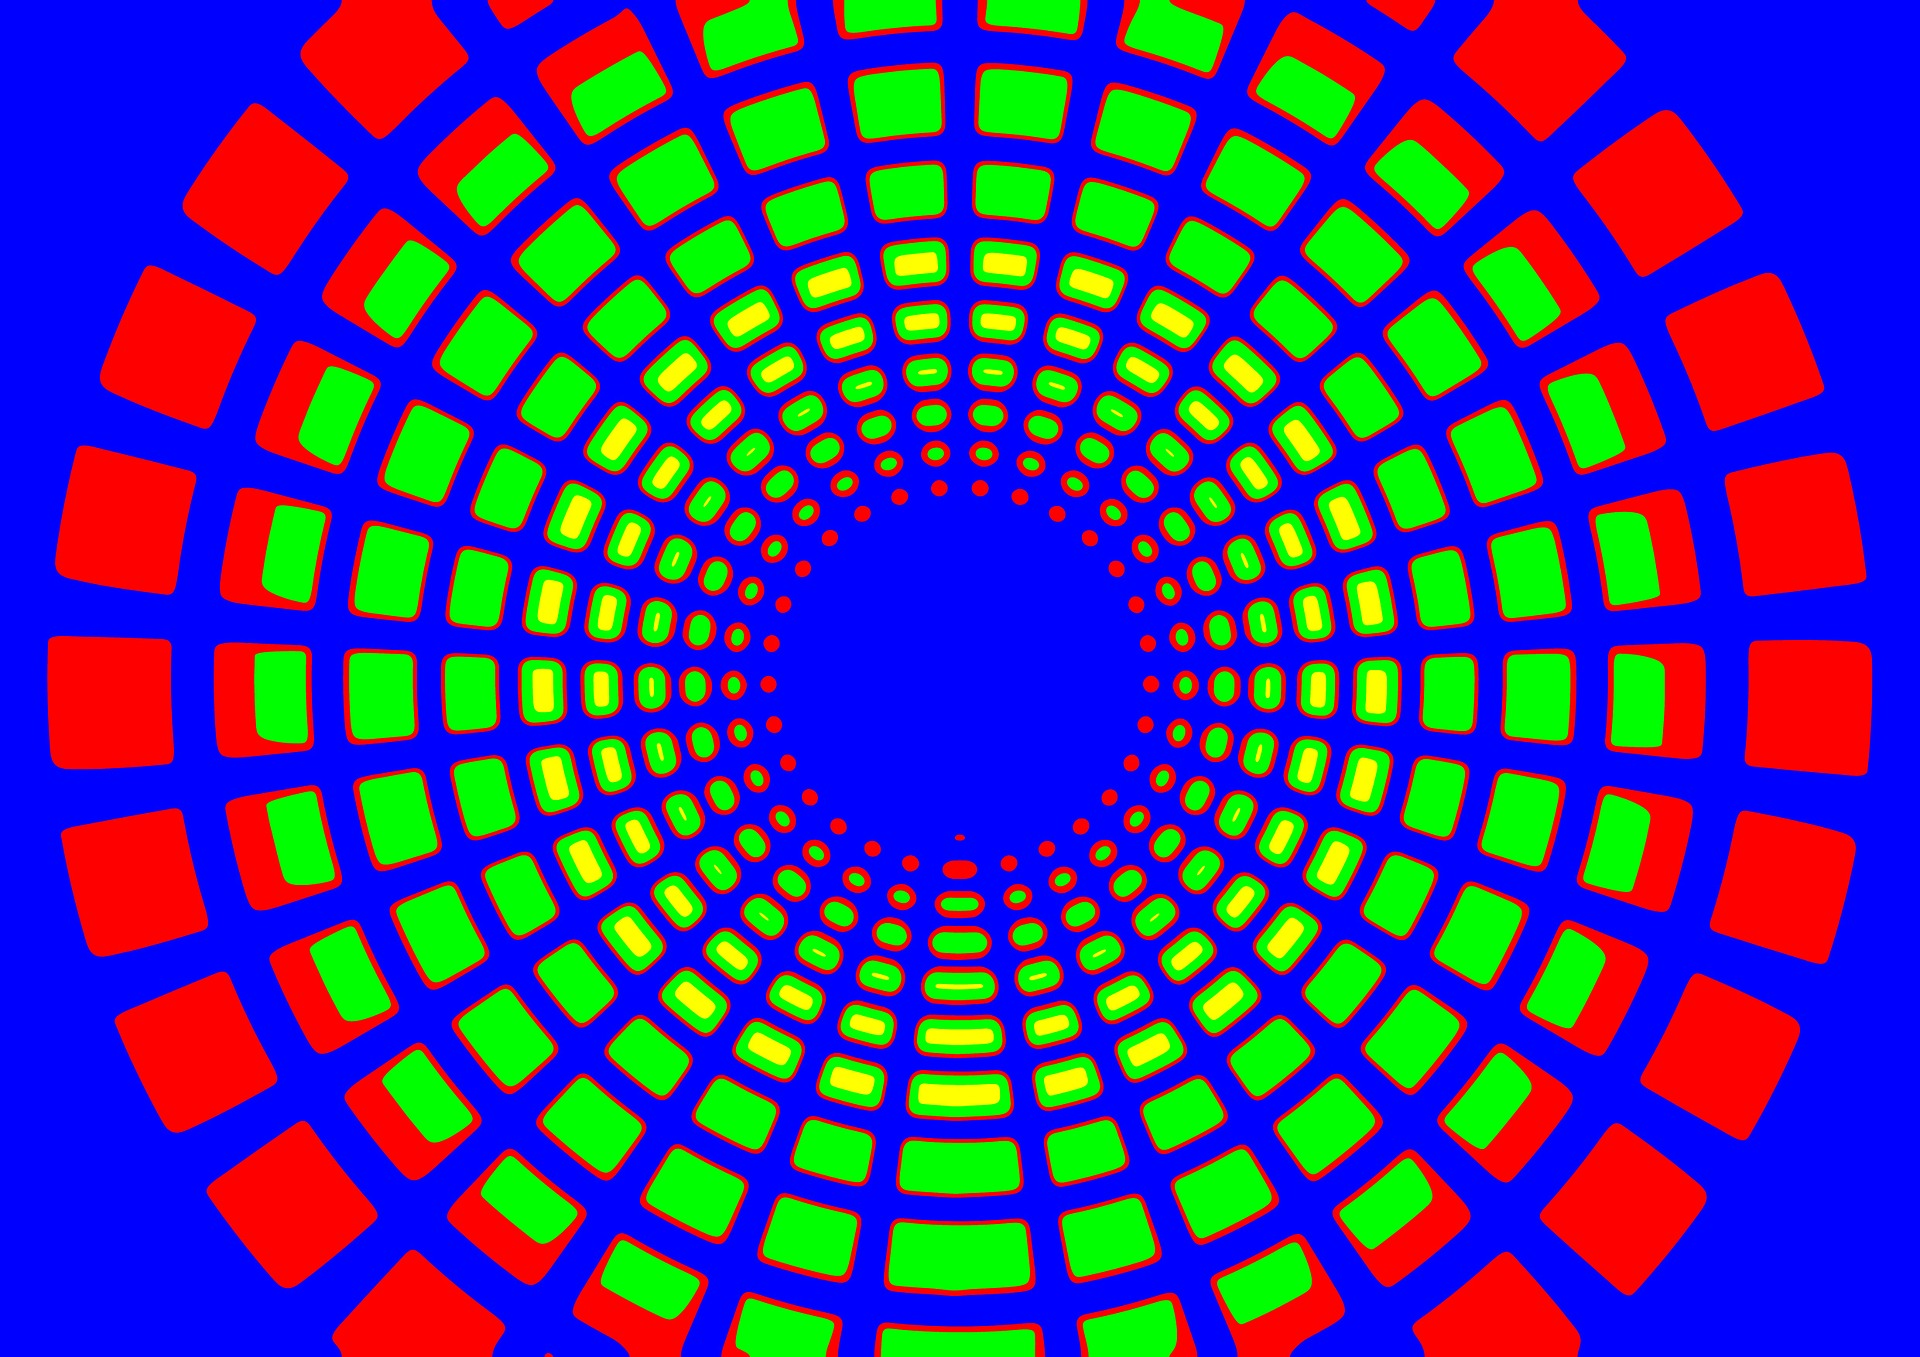 Color hypno.jpeg